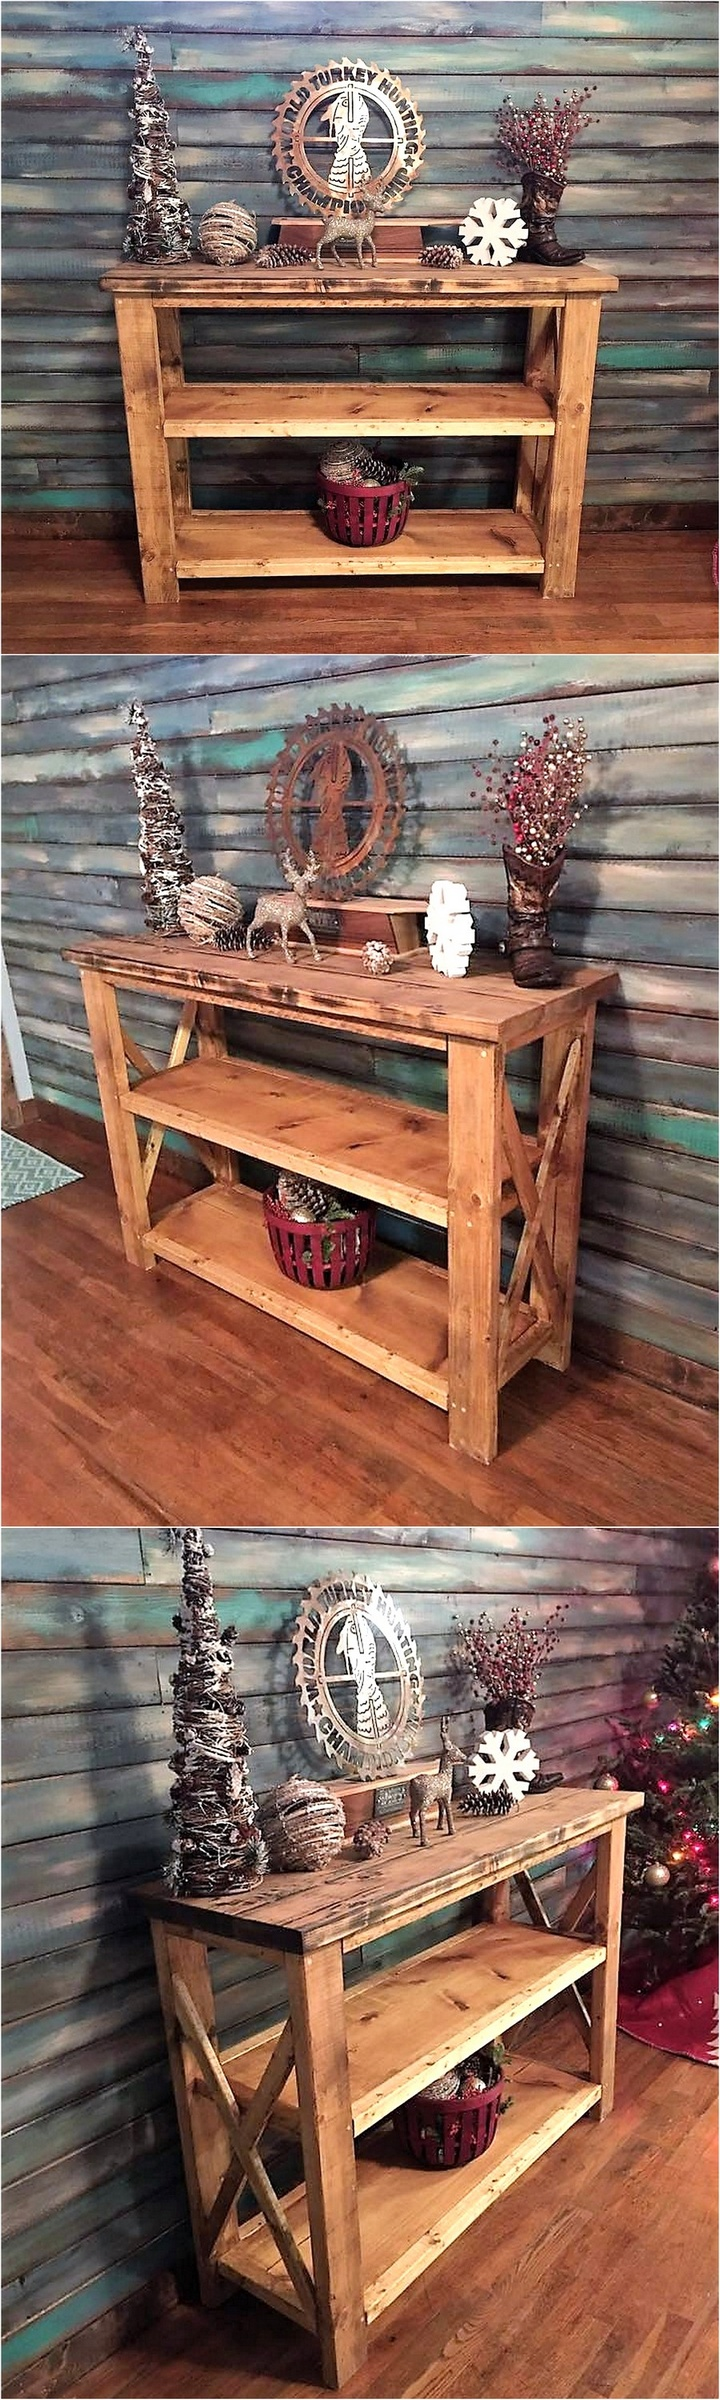 recycled-pallet-side-table